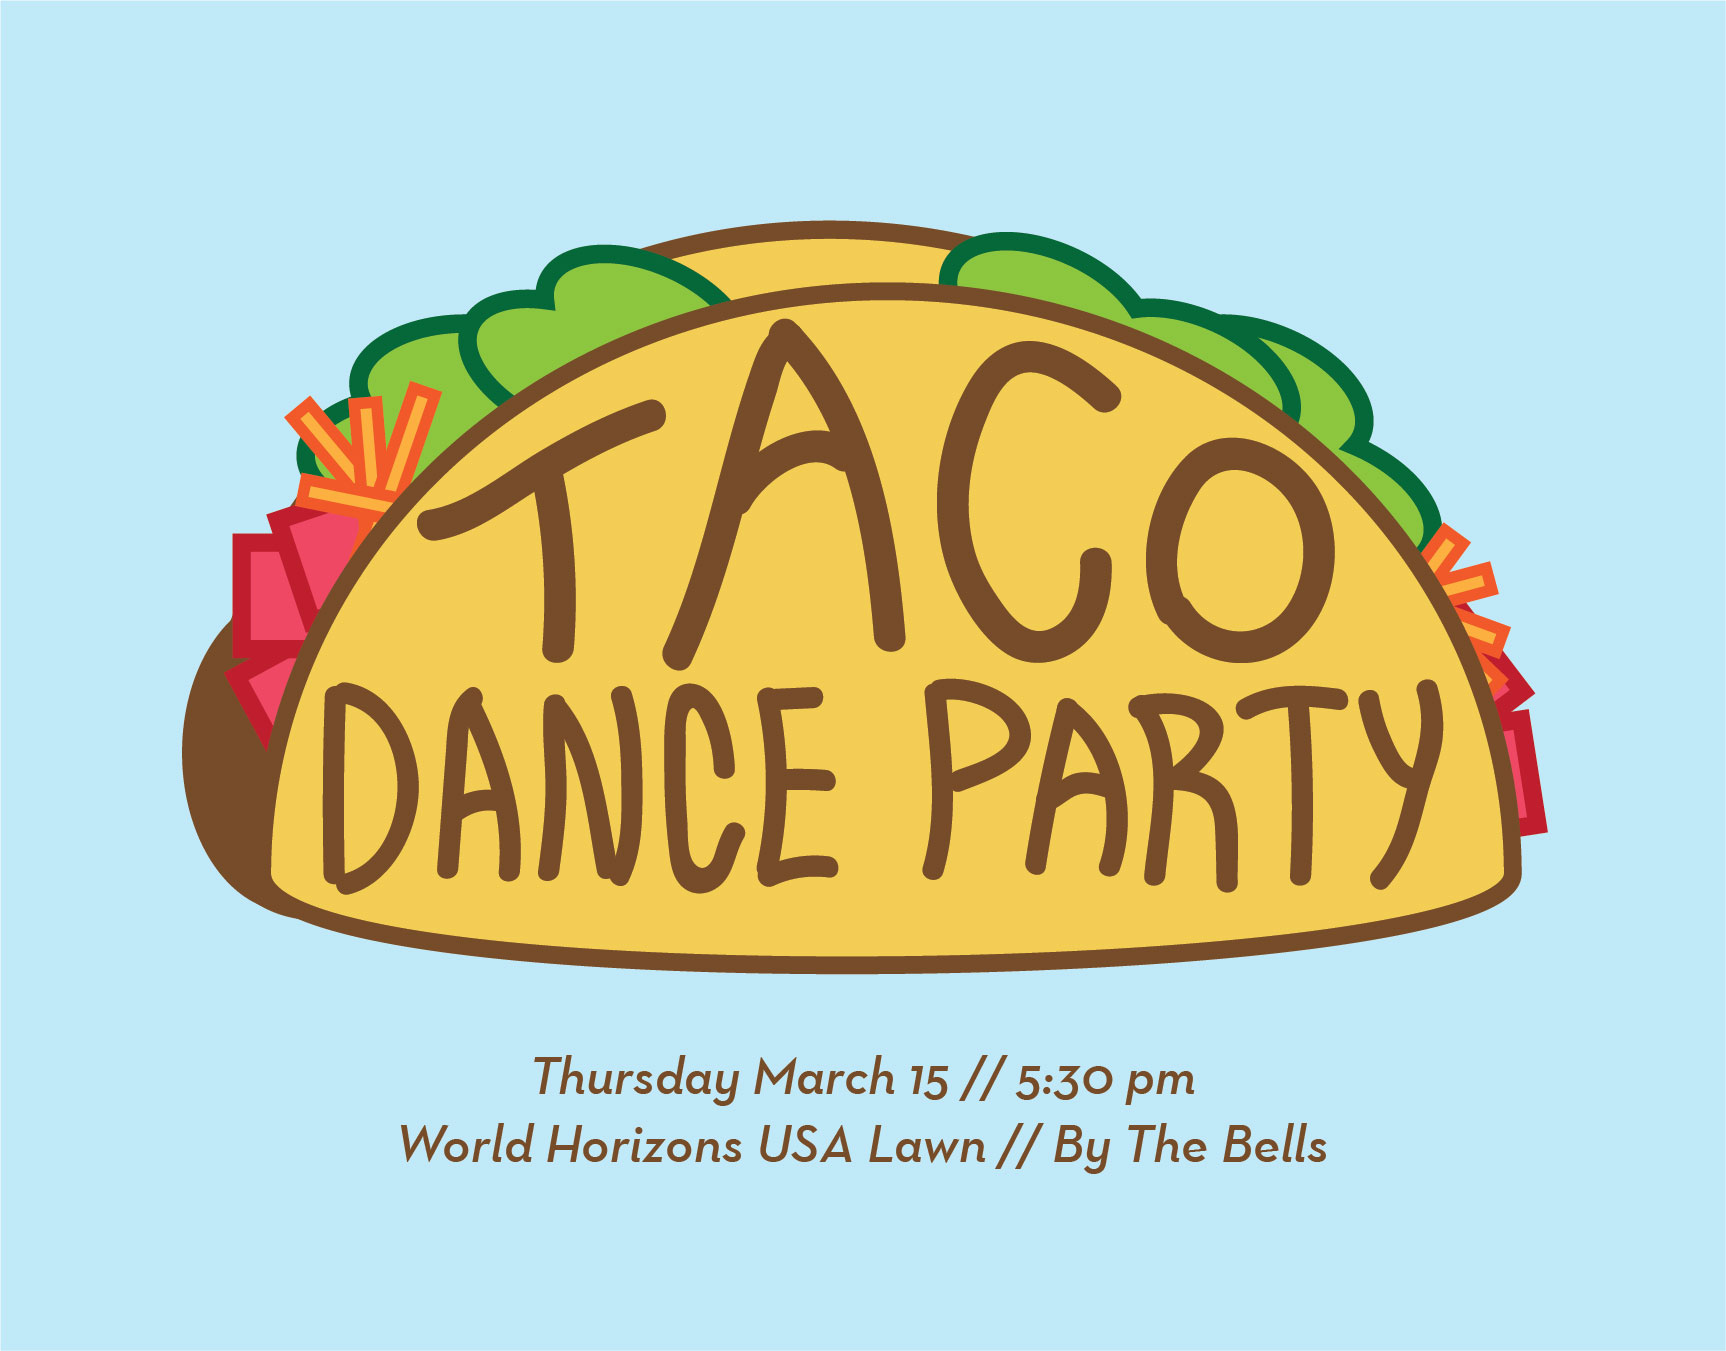 Taco Dance Party Invitation